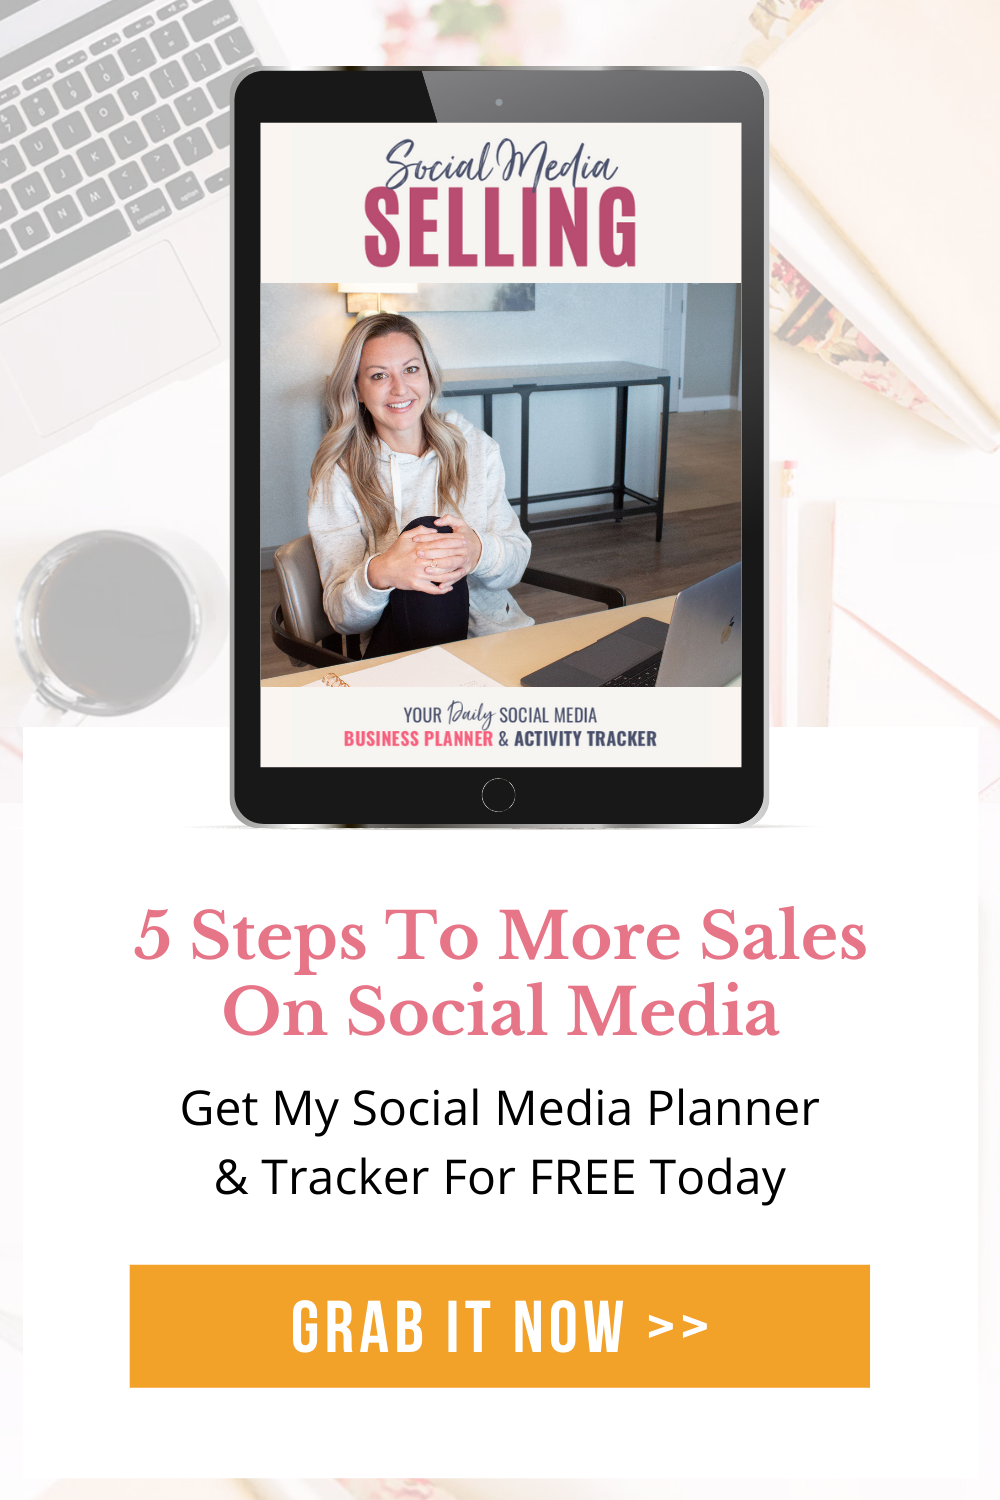 The Smart Marketer's Social Media Selling Plan